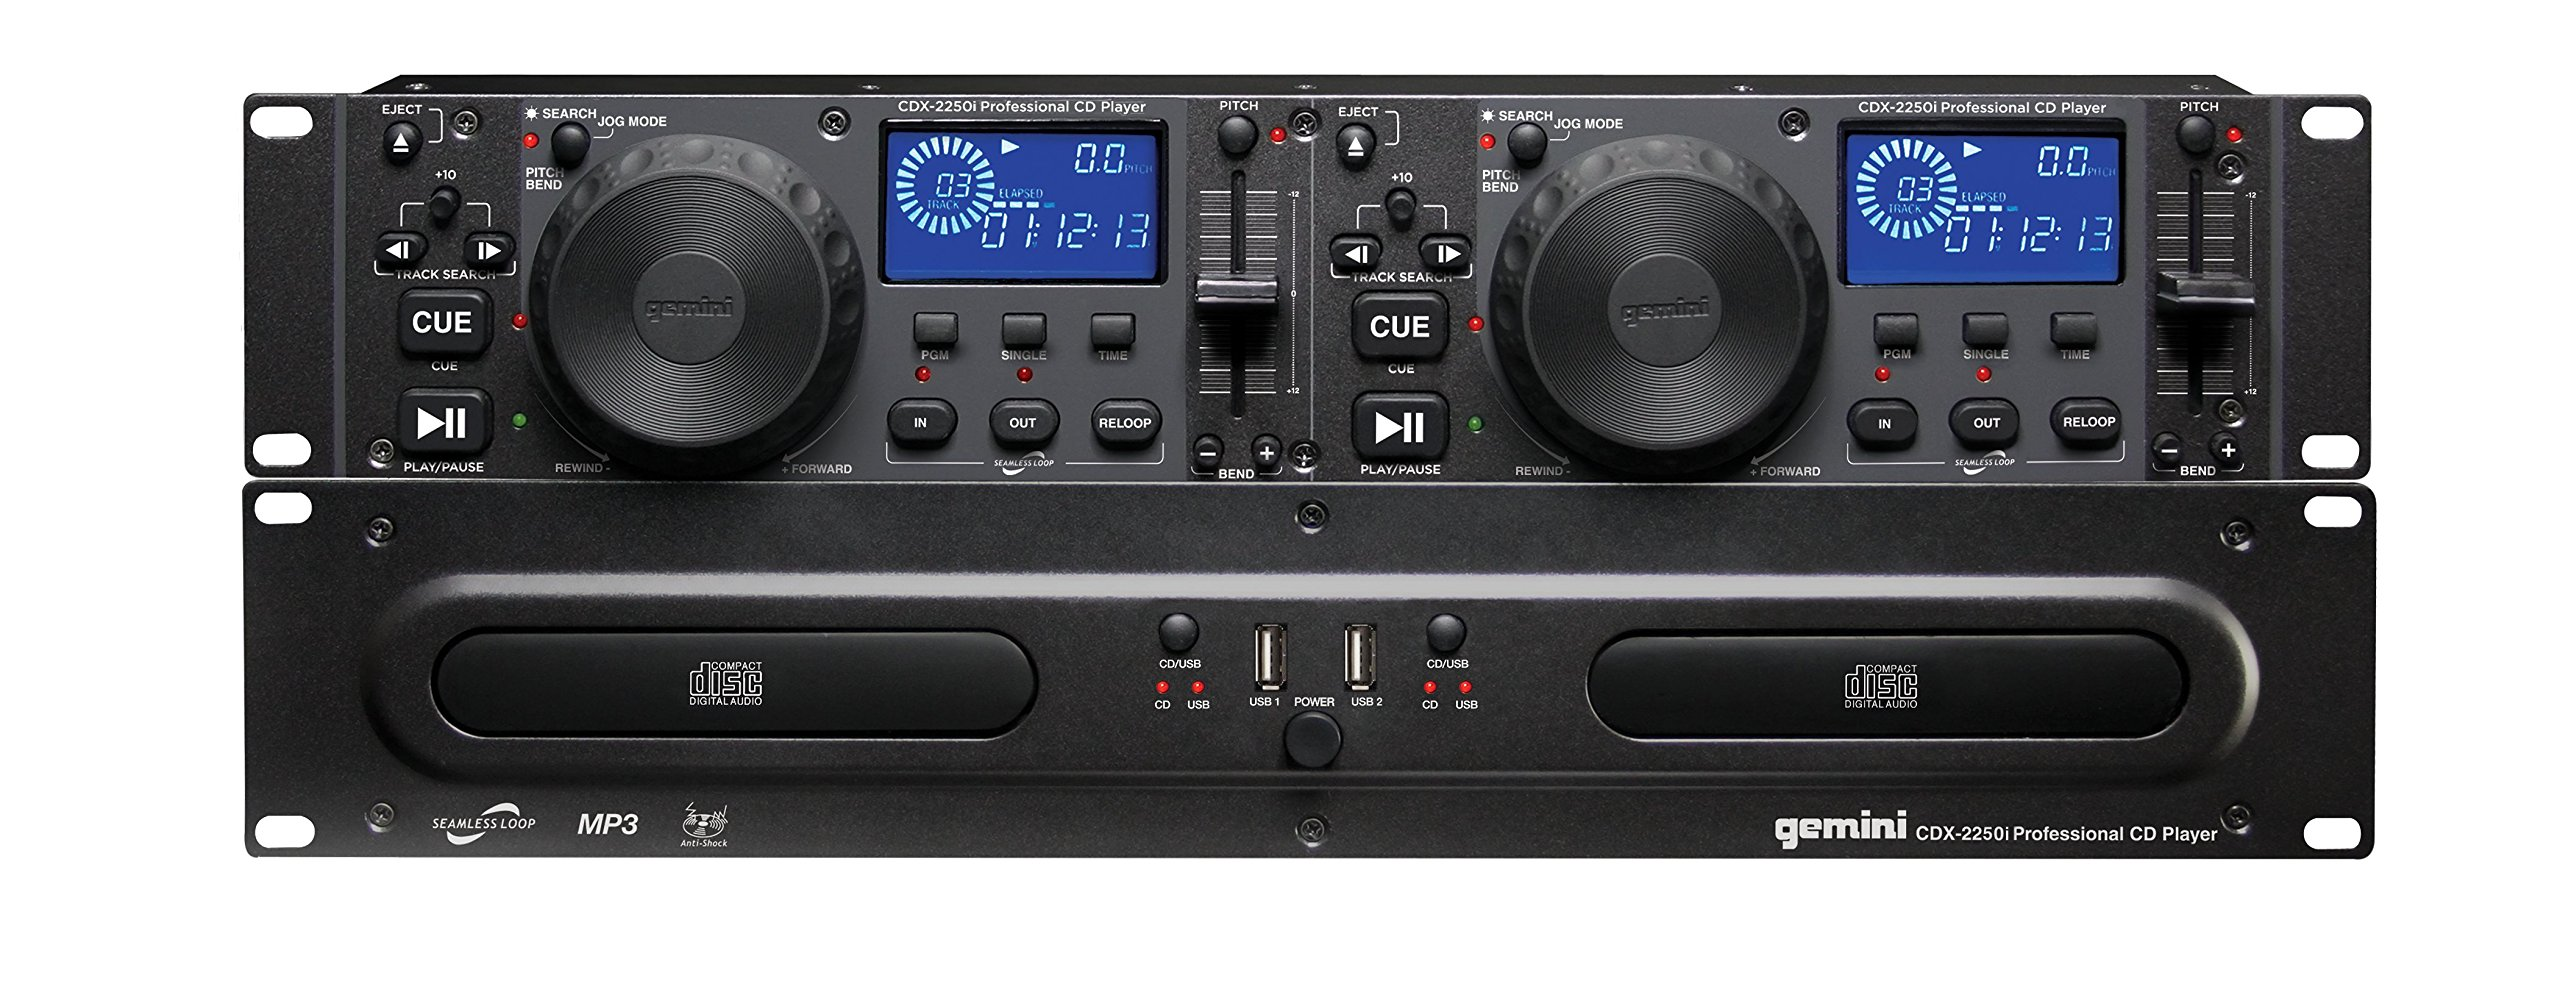 Gemini CDX Series CDX-2250i Professional Audio DJ Equipment Multimedia CD Media Player with Audio CD, CD-R, and MP3 Compatible with USB Input by GEMINI